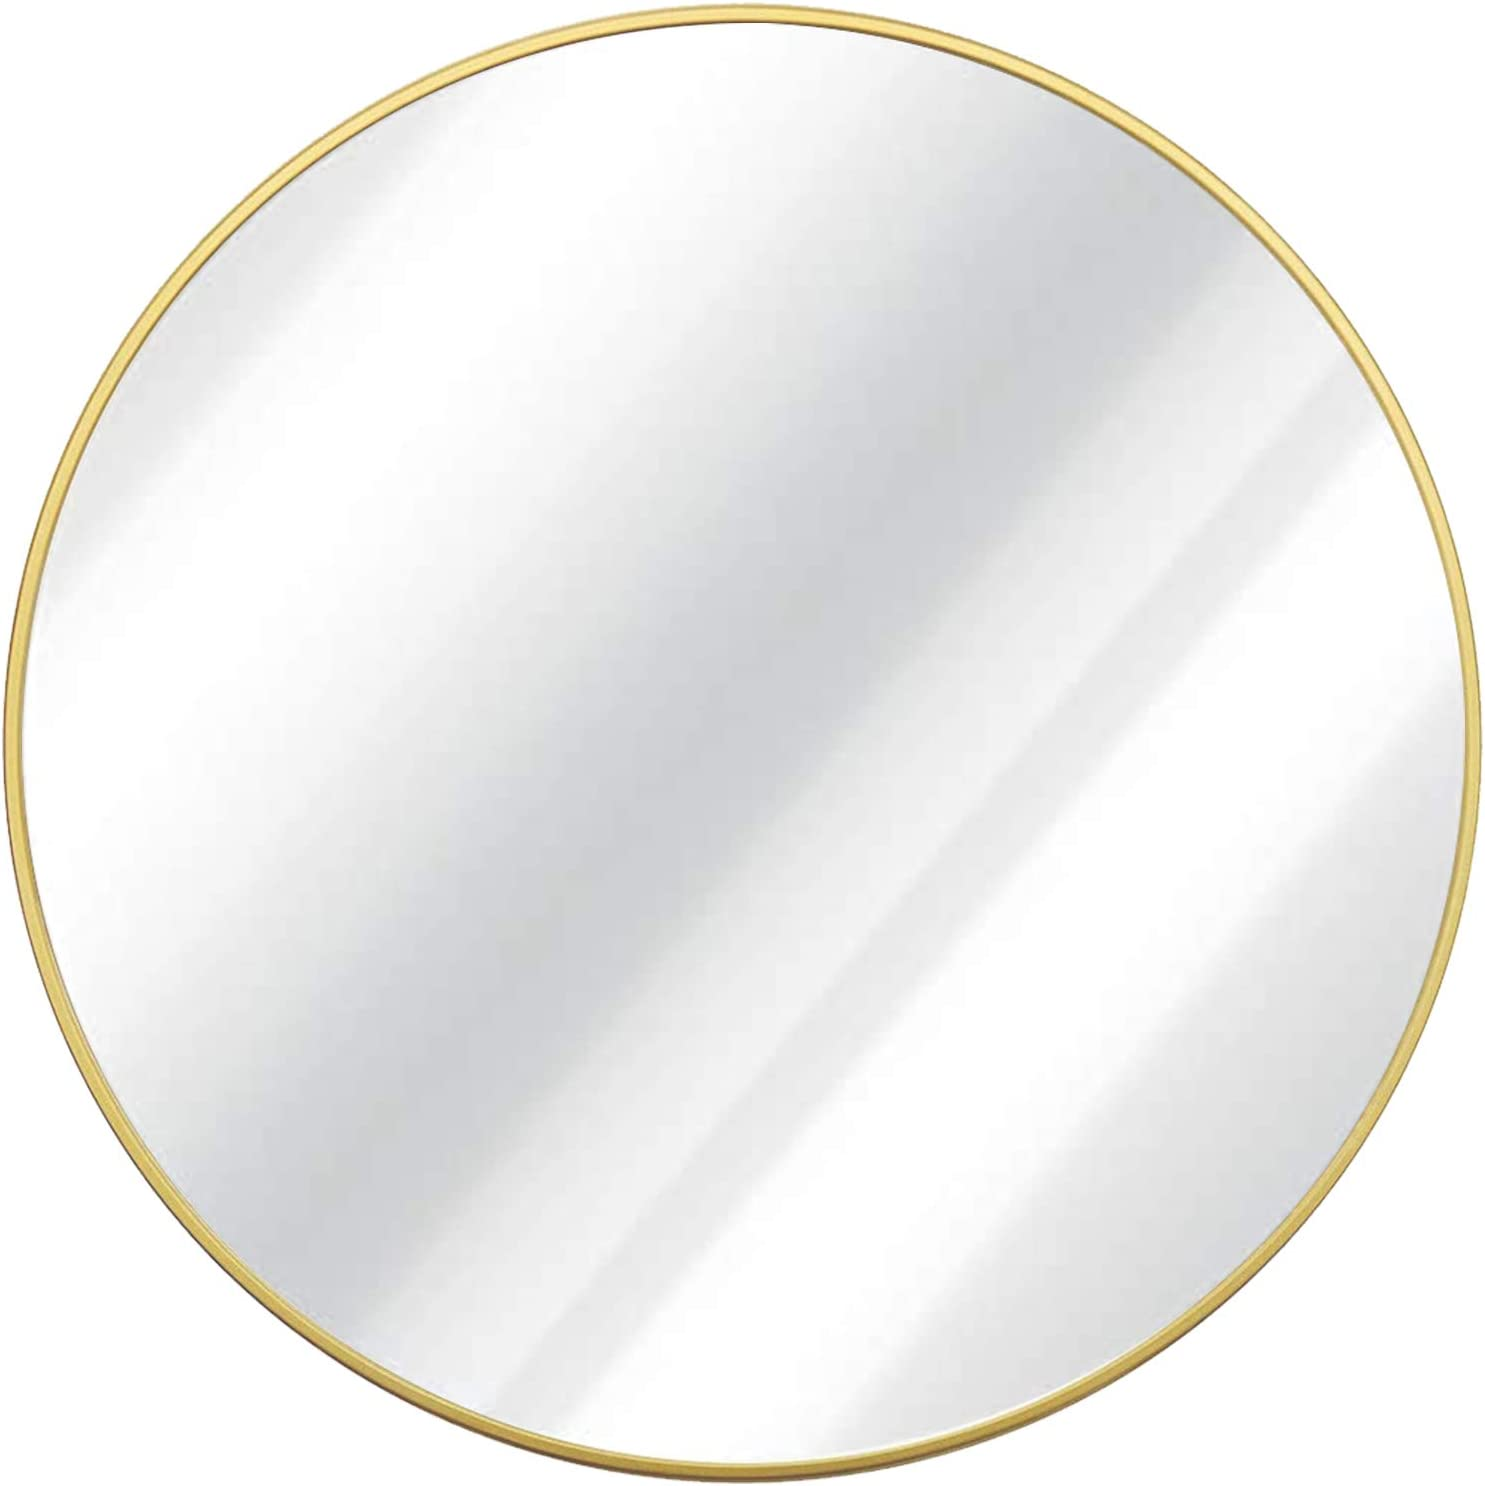 Growsun 30 inch Wall Round Mirror, Large Wall Mounted Circle Mirror Black Metal Frame for Bathroom, Entry, Dining Room, & Living Room